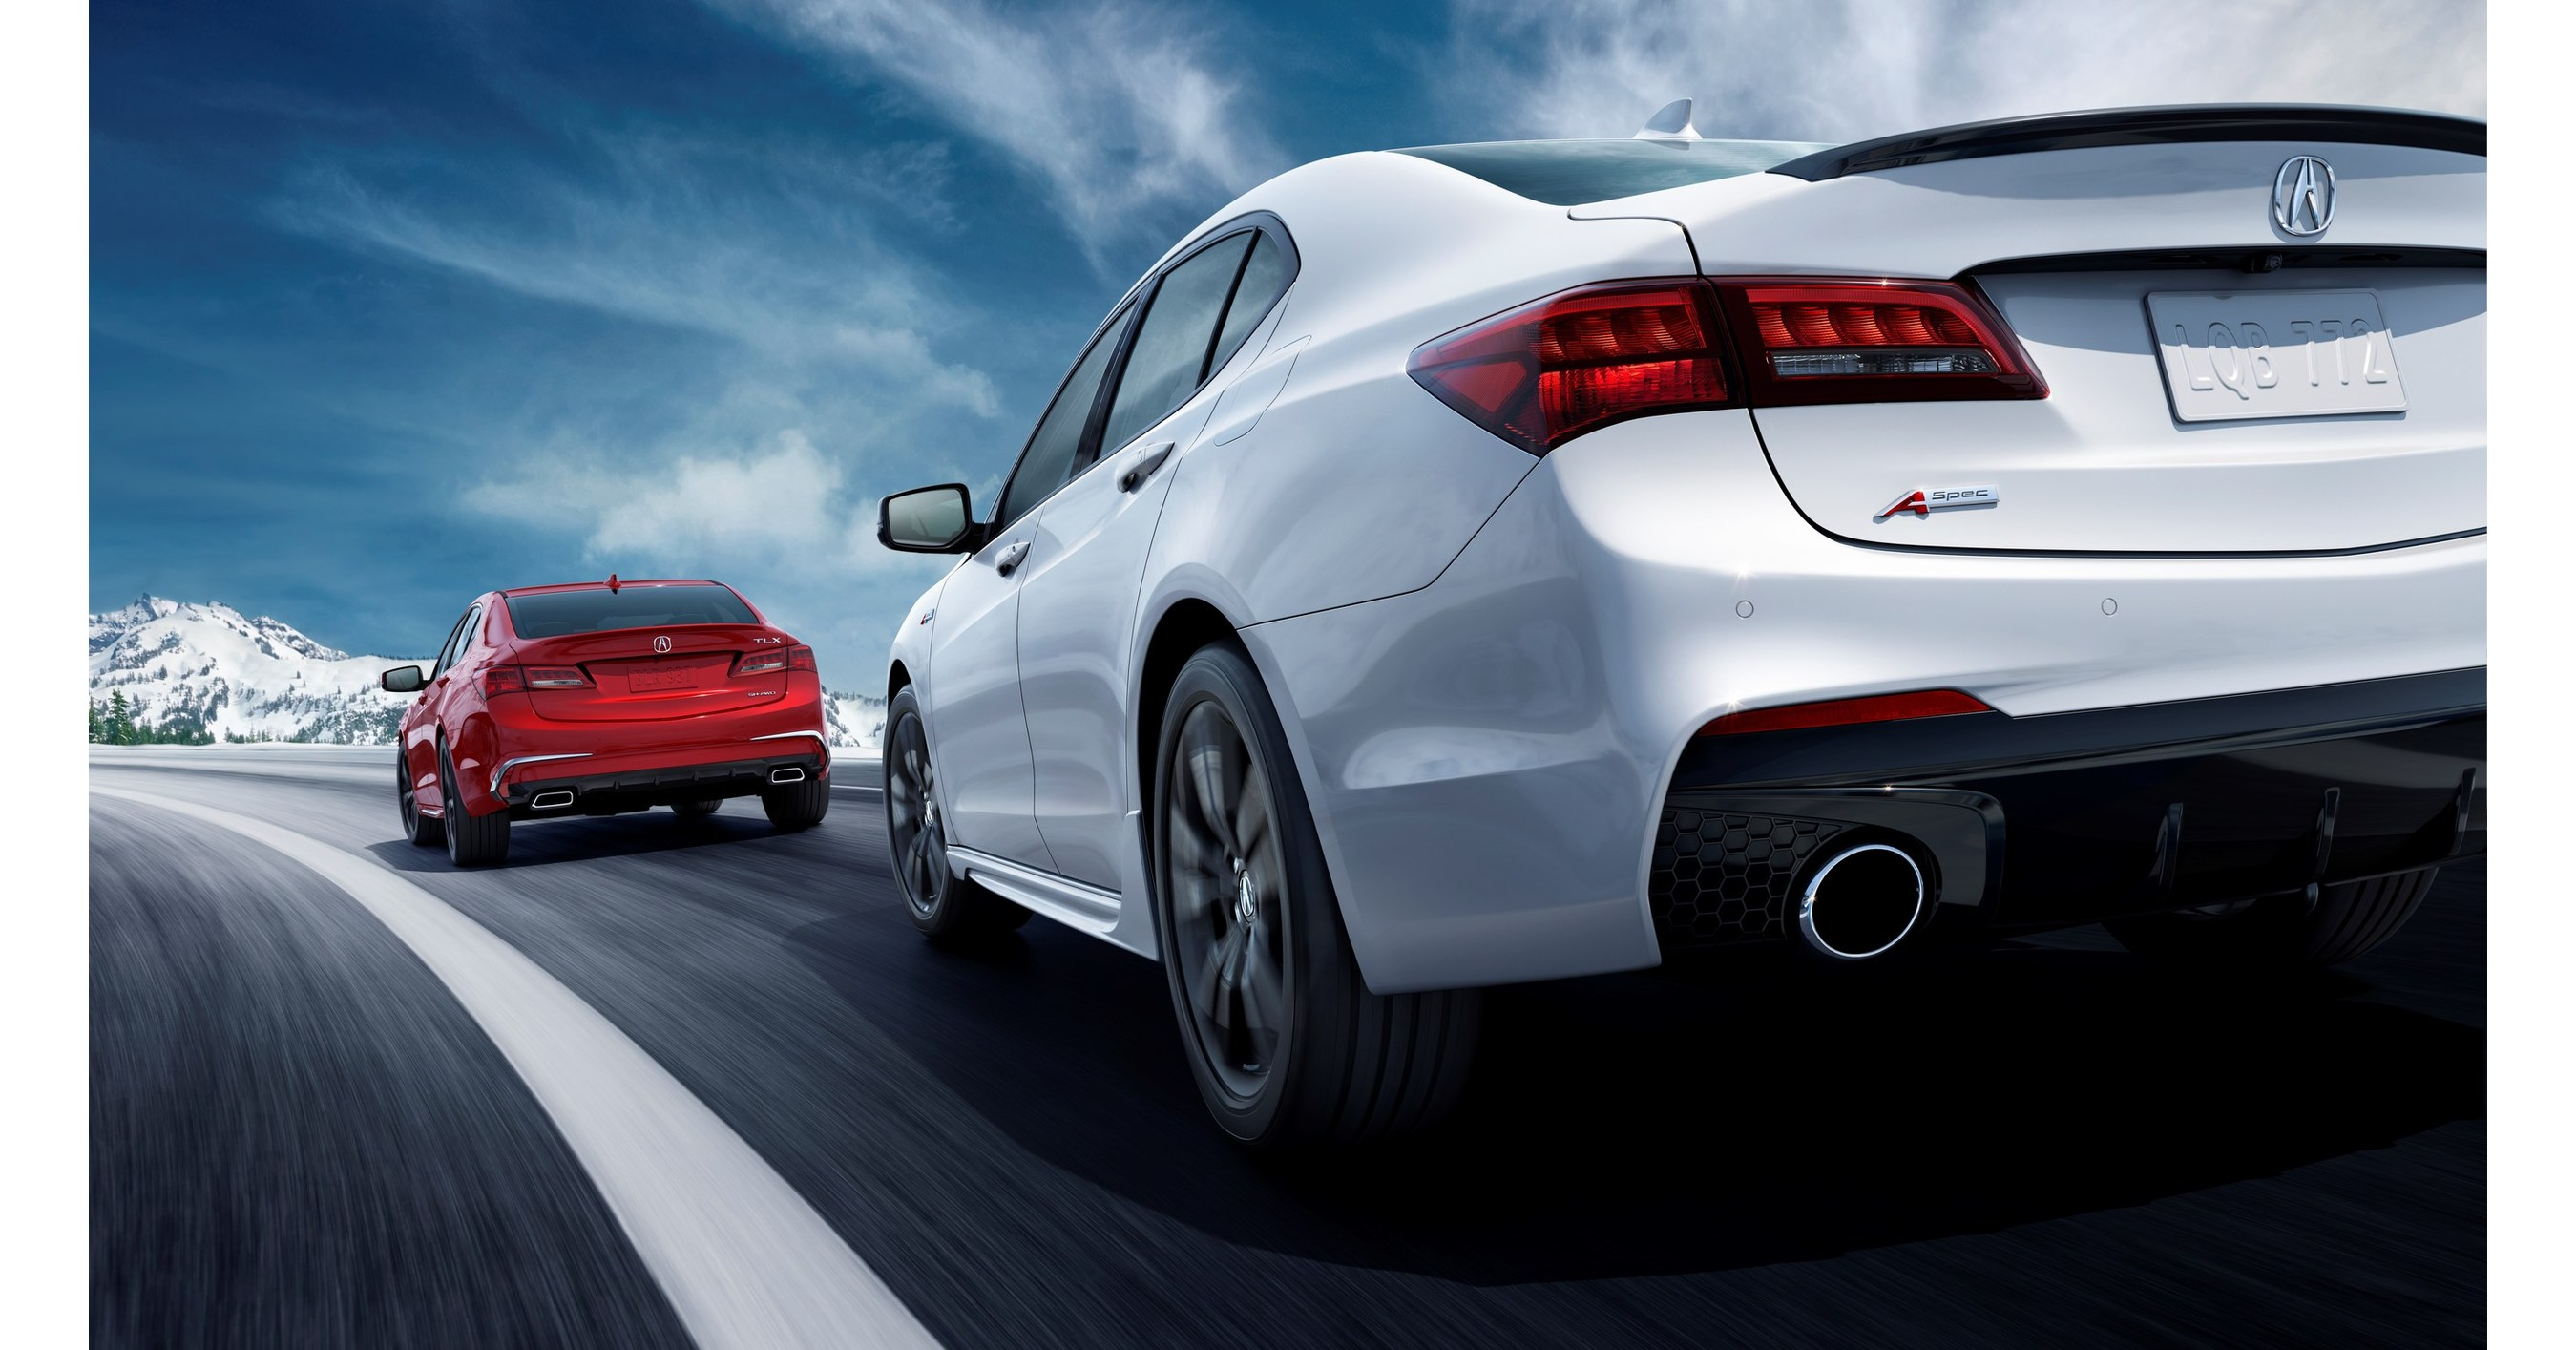 2018 acura tlx makes world debut with aggressive sporty design and new technology features